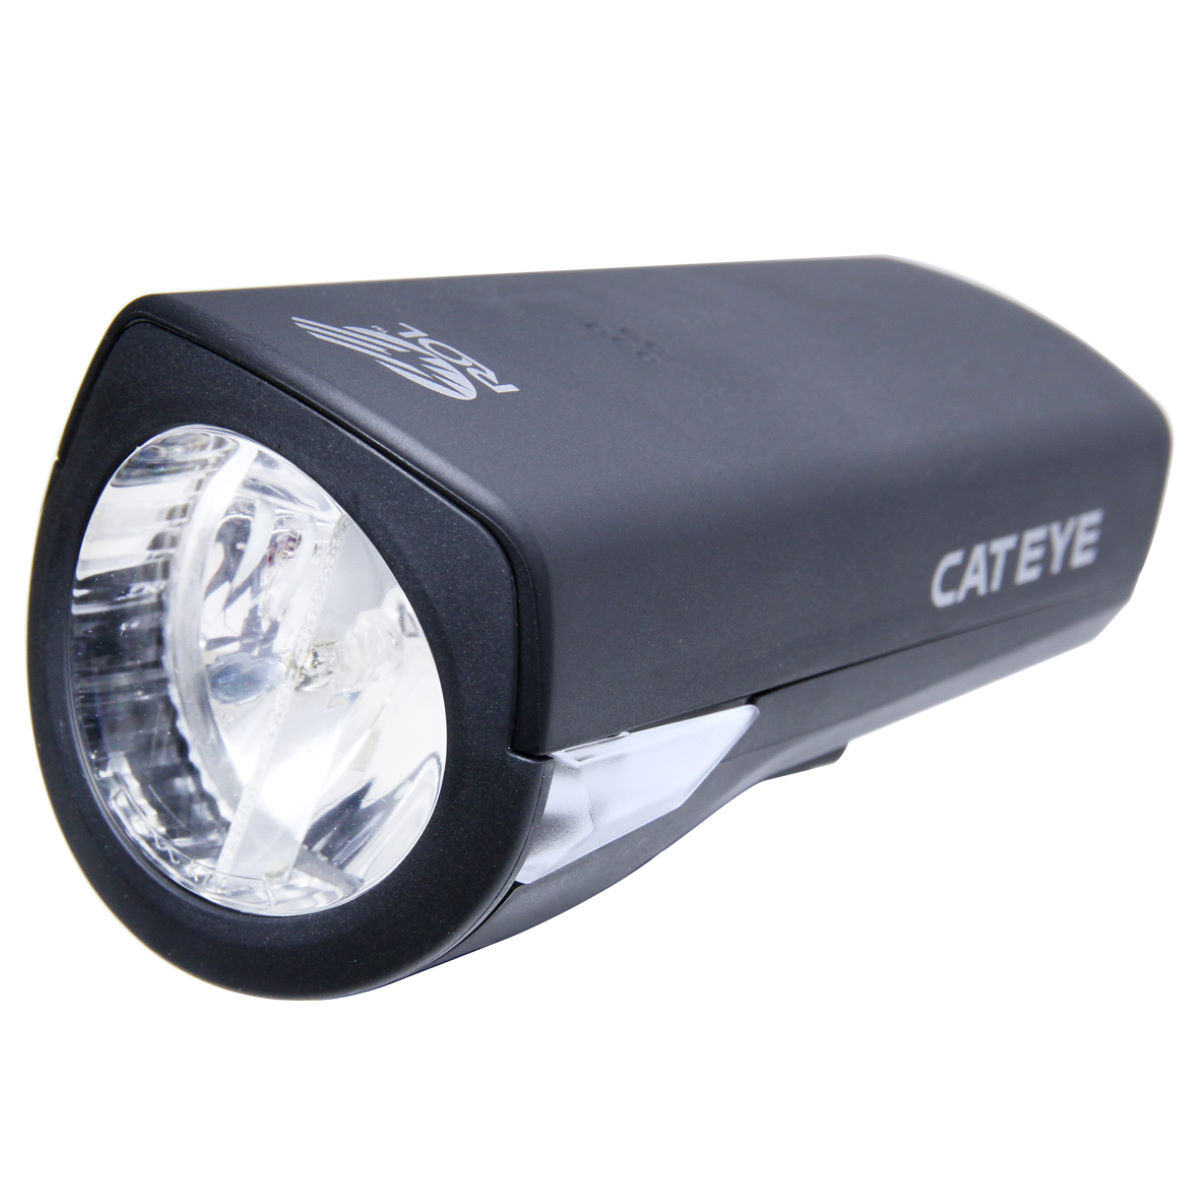 Cateye HL-EL340 G LED Super Front Light